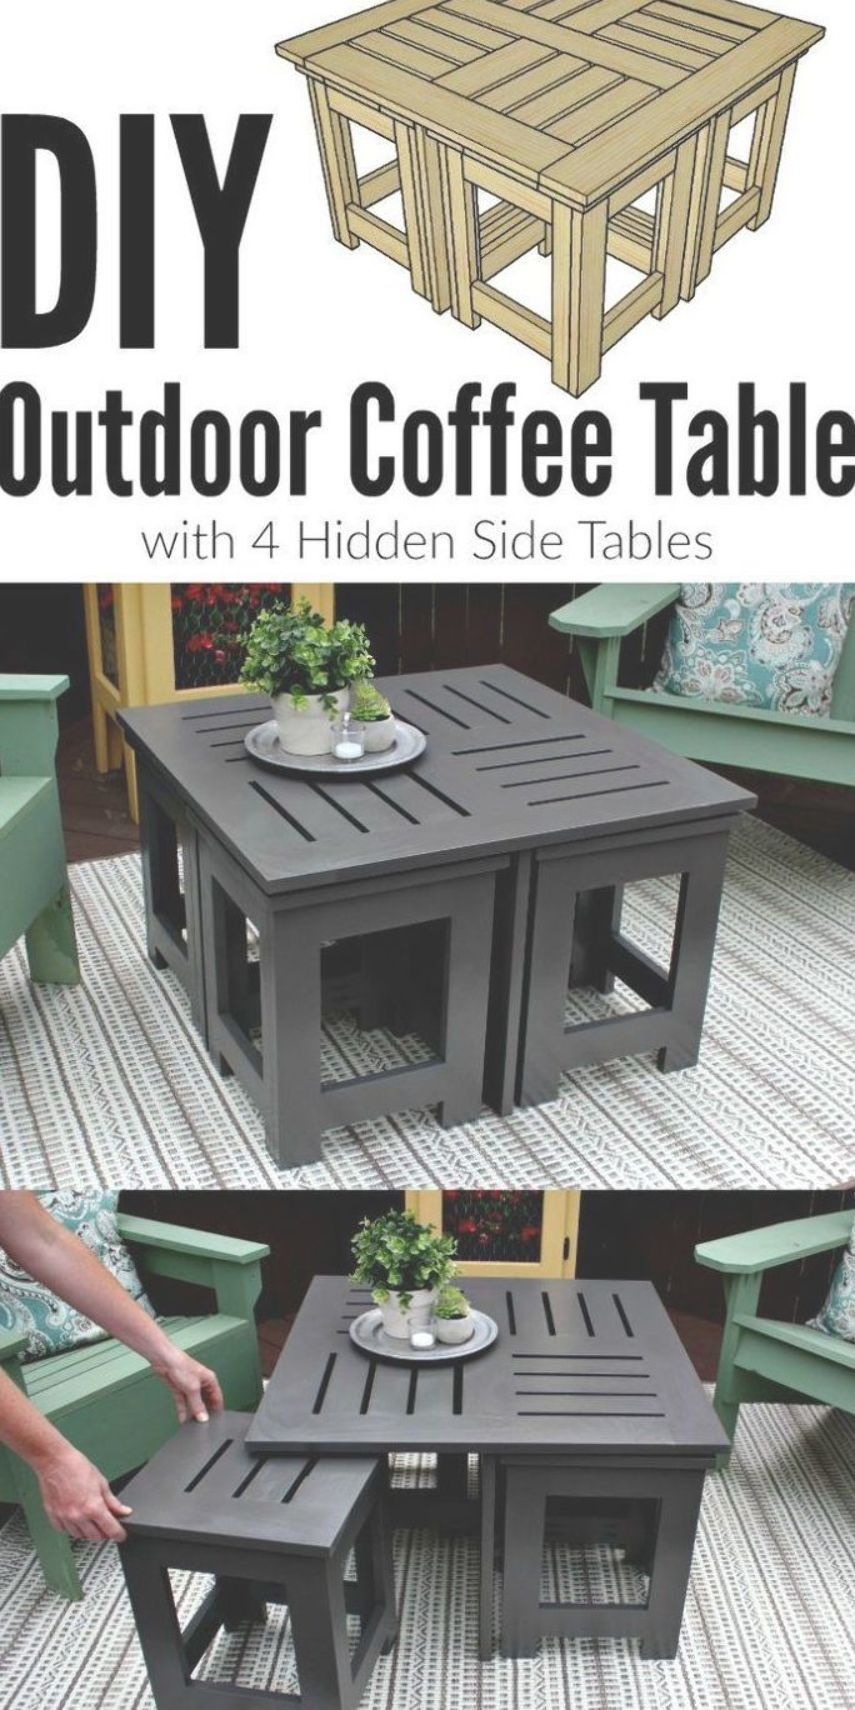 Looking For Ideas For An Easy Diy Outdoor Coffee Table This Plans Shows How To Make A Small Coffe Diy Outdoor Furniture Outdoor Coffee Tables Diy Coffee Table [ 1710 x 855 Pixel ]